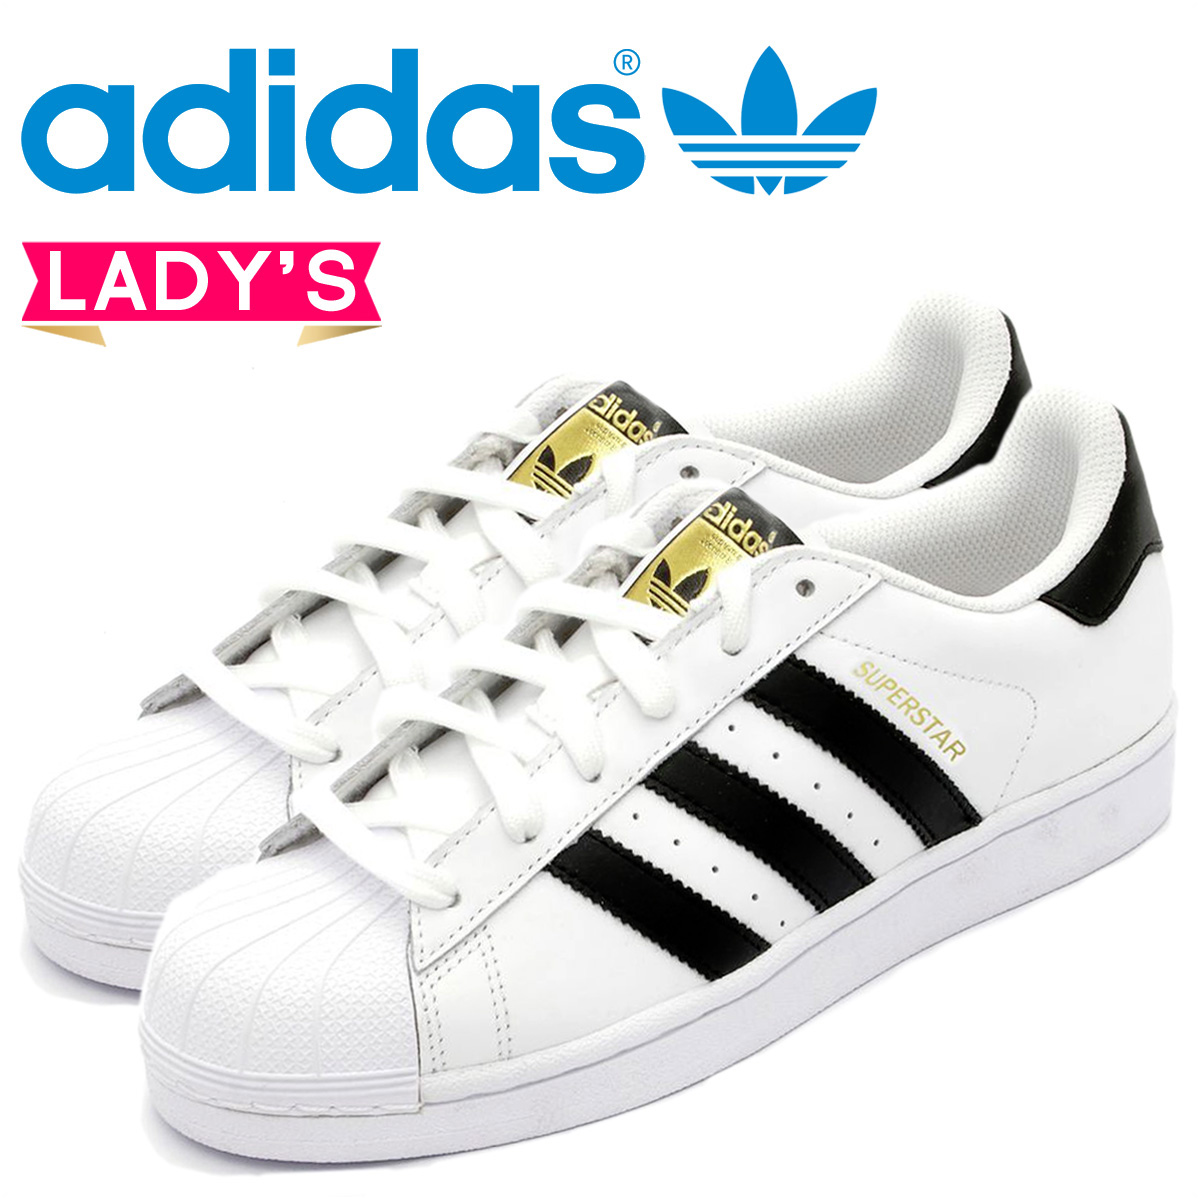 ... 11 around stock» points 2 x adidas originals adidas Originals ladies  SUPERSTAR J sneakers superstar J girls leather kids Jr child C77154 white  black [7 ...